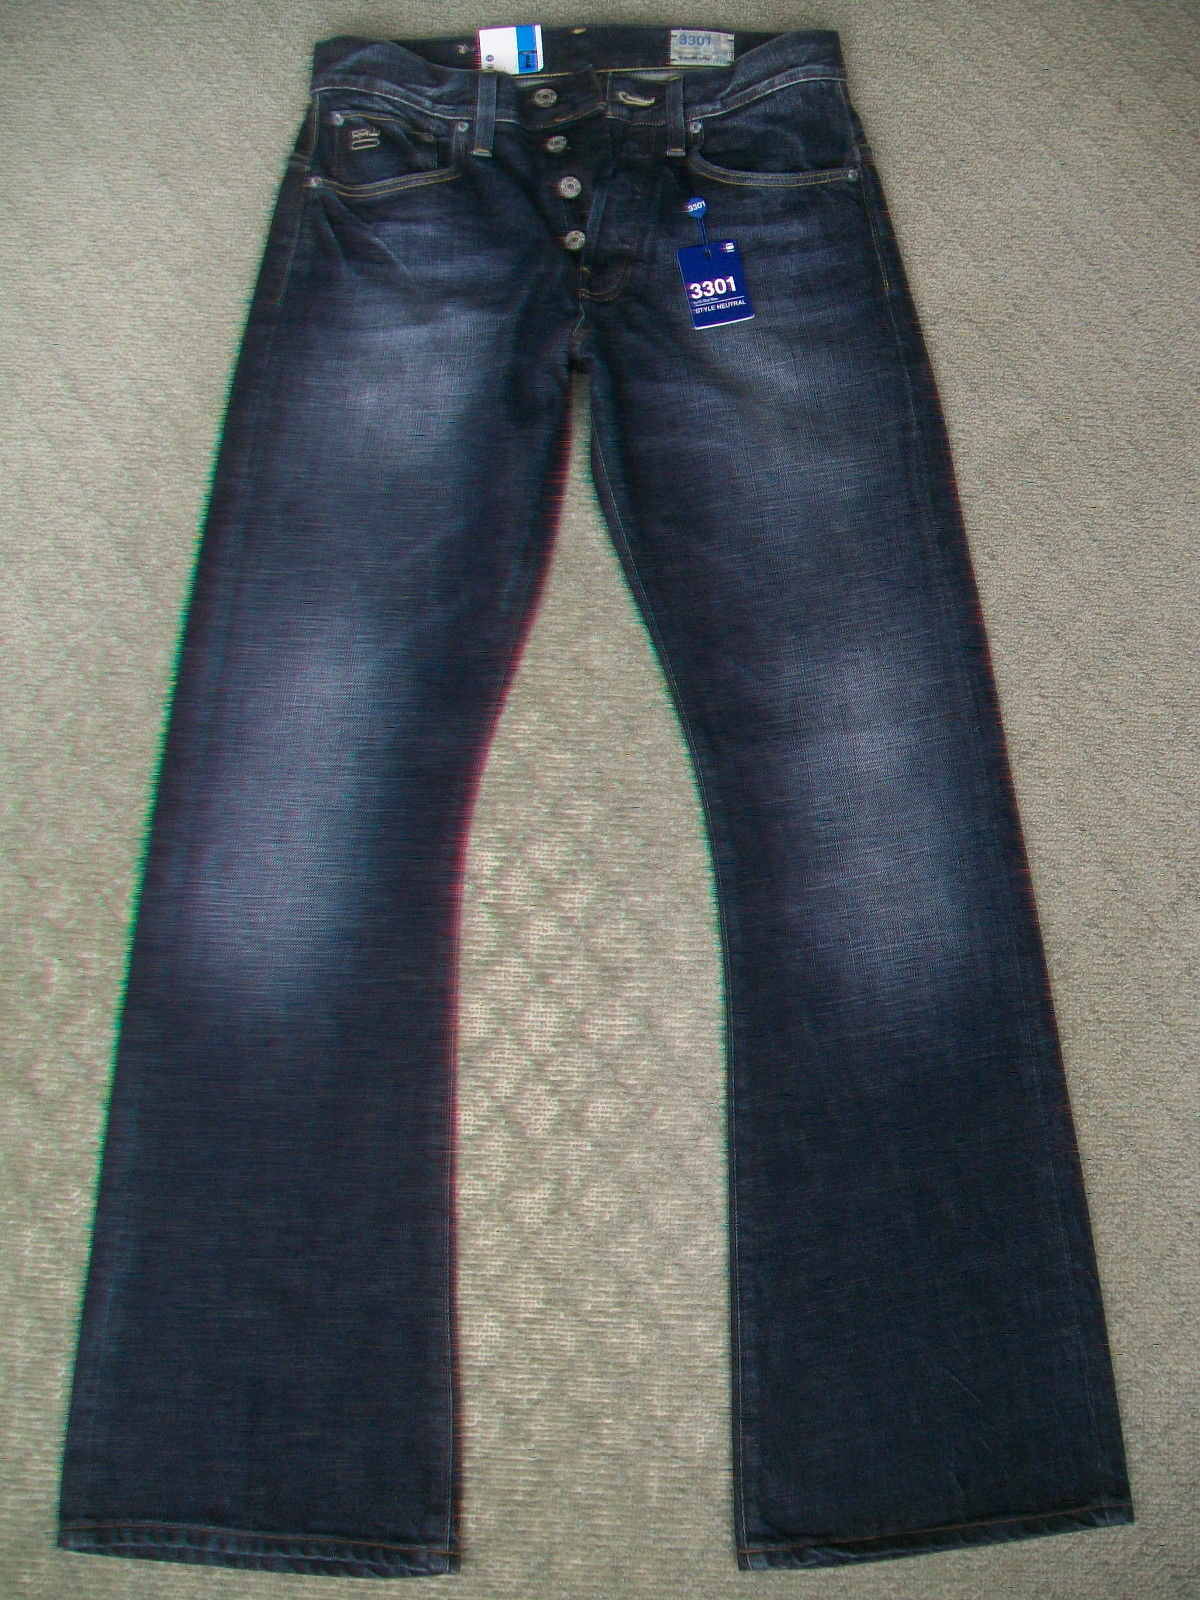 141e47d2675eb MENS G STAR  3301 BOOT  JEANS - BNWT - 28 29 30 31 SIZE oocunr2764-Jeans